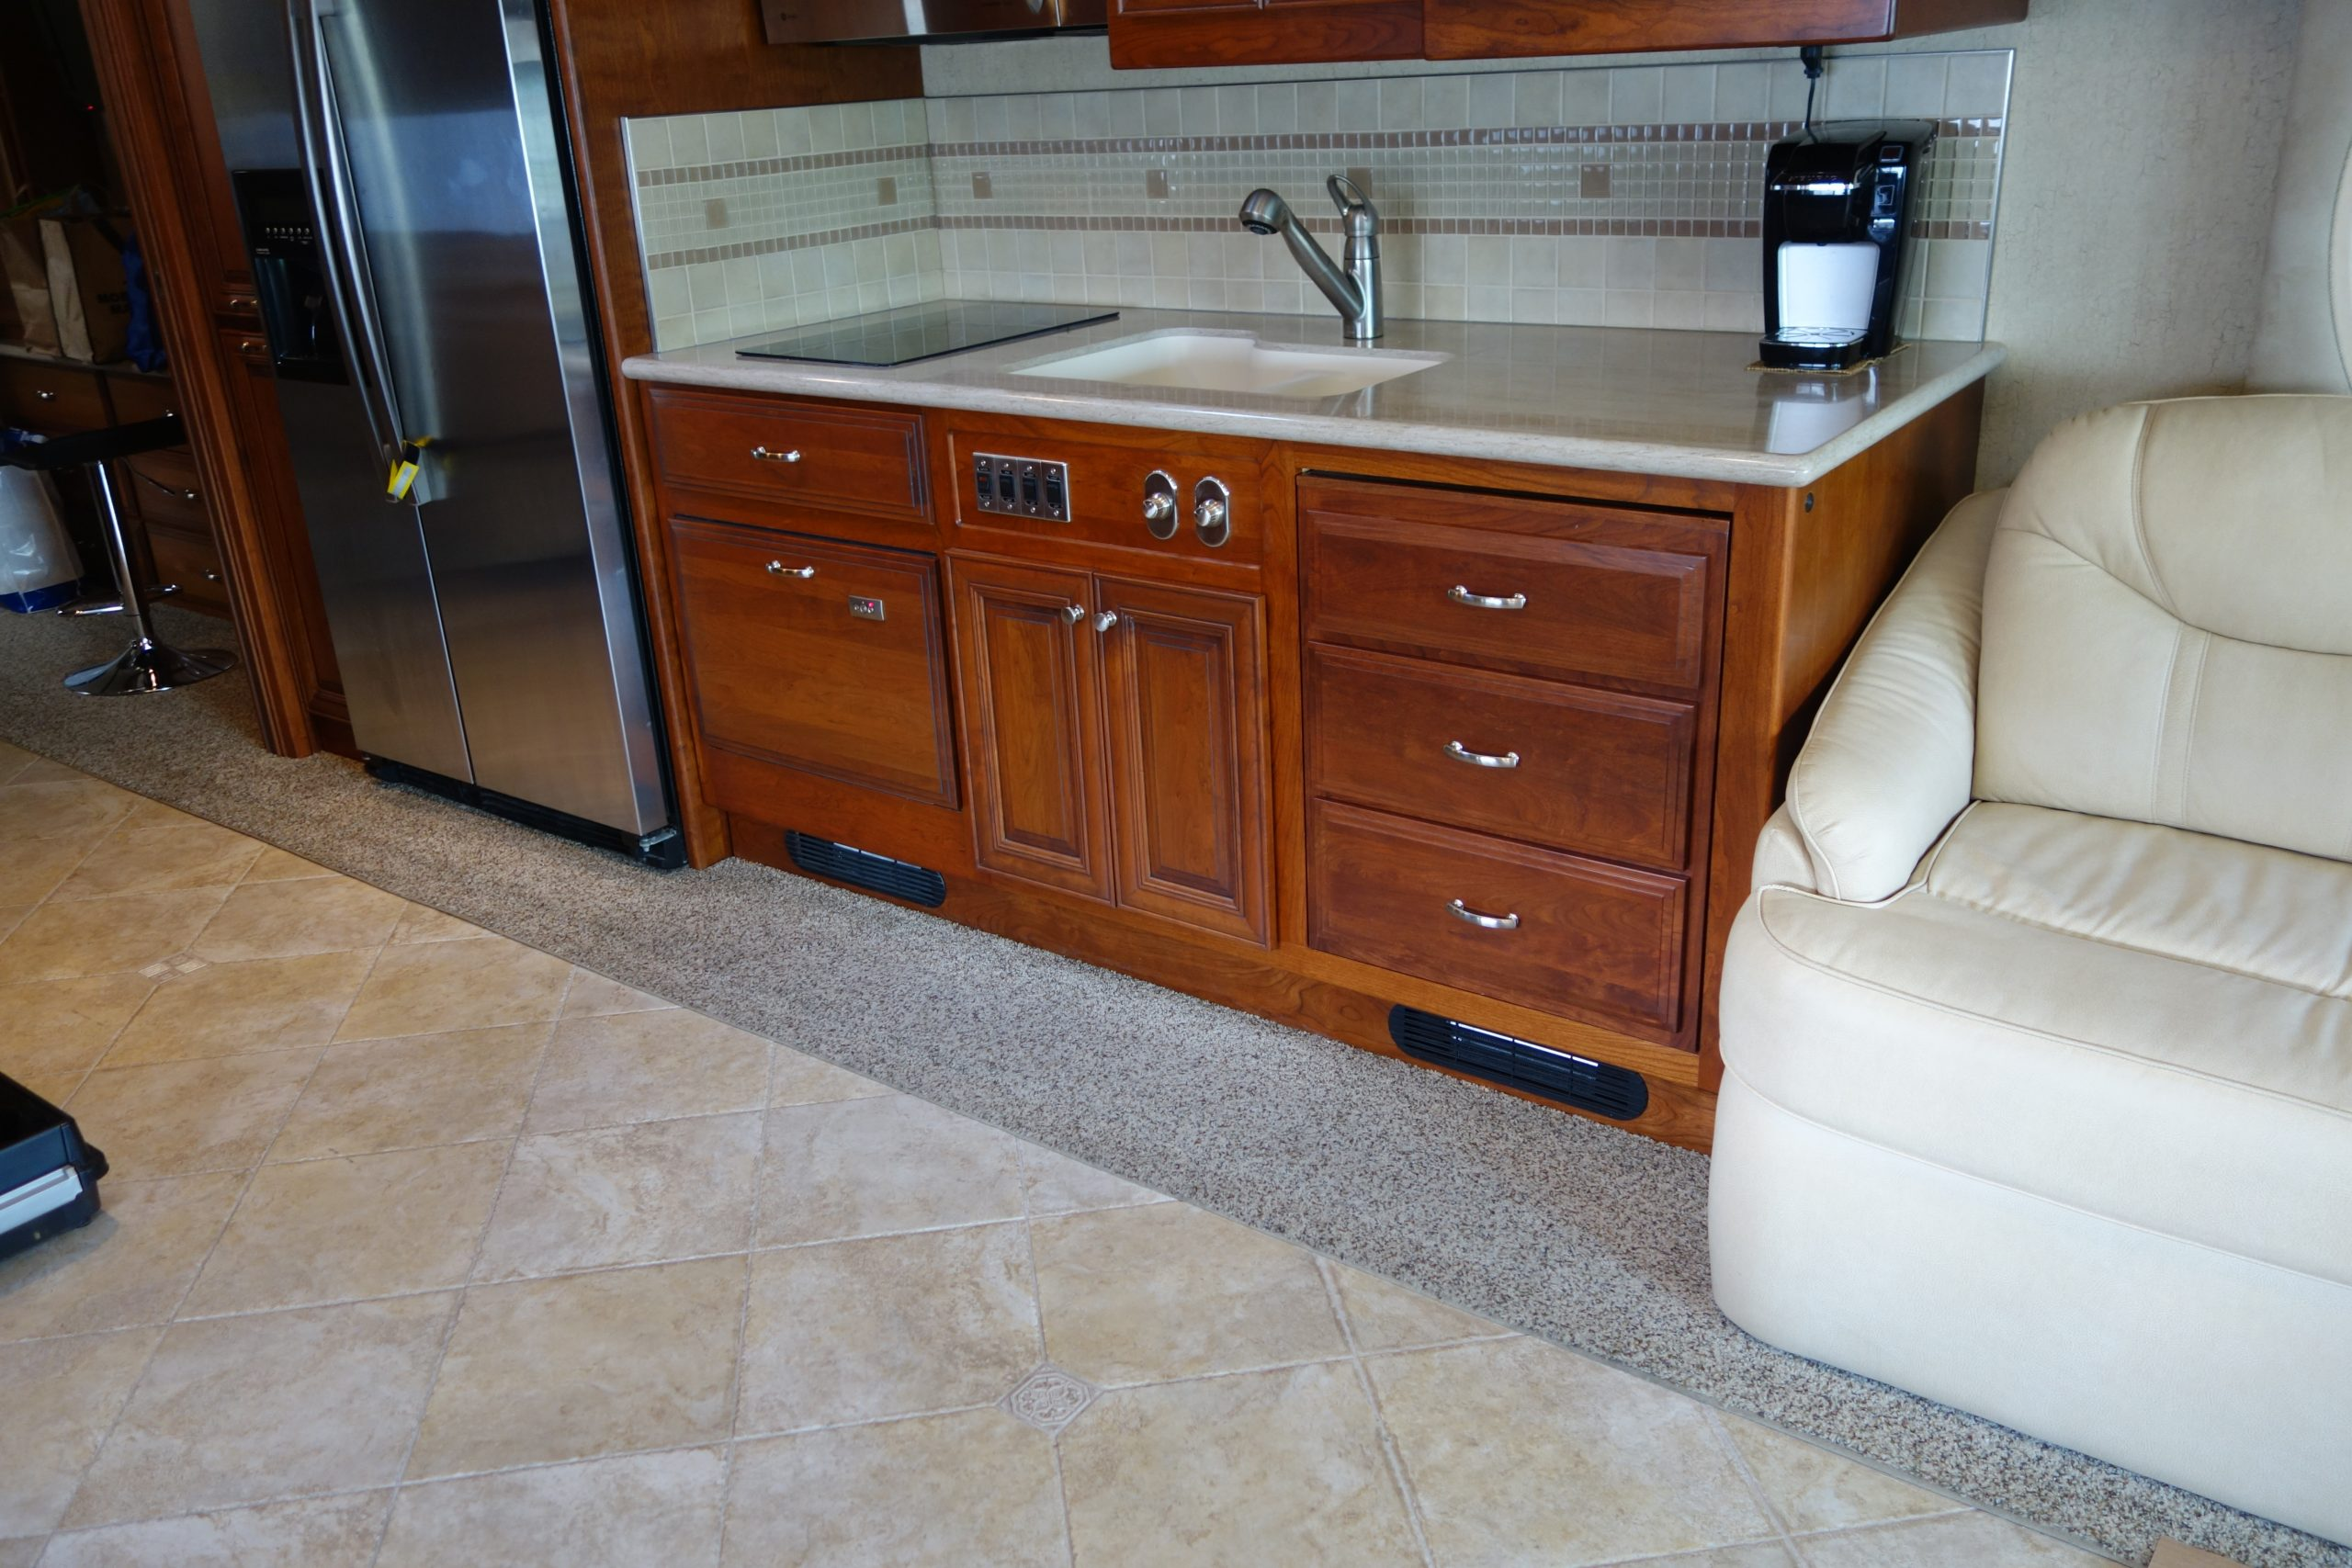 Pullout kitchen drawers pushed in